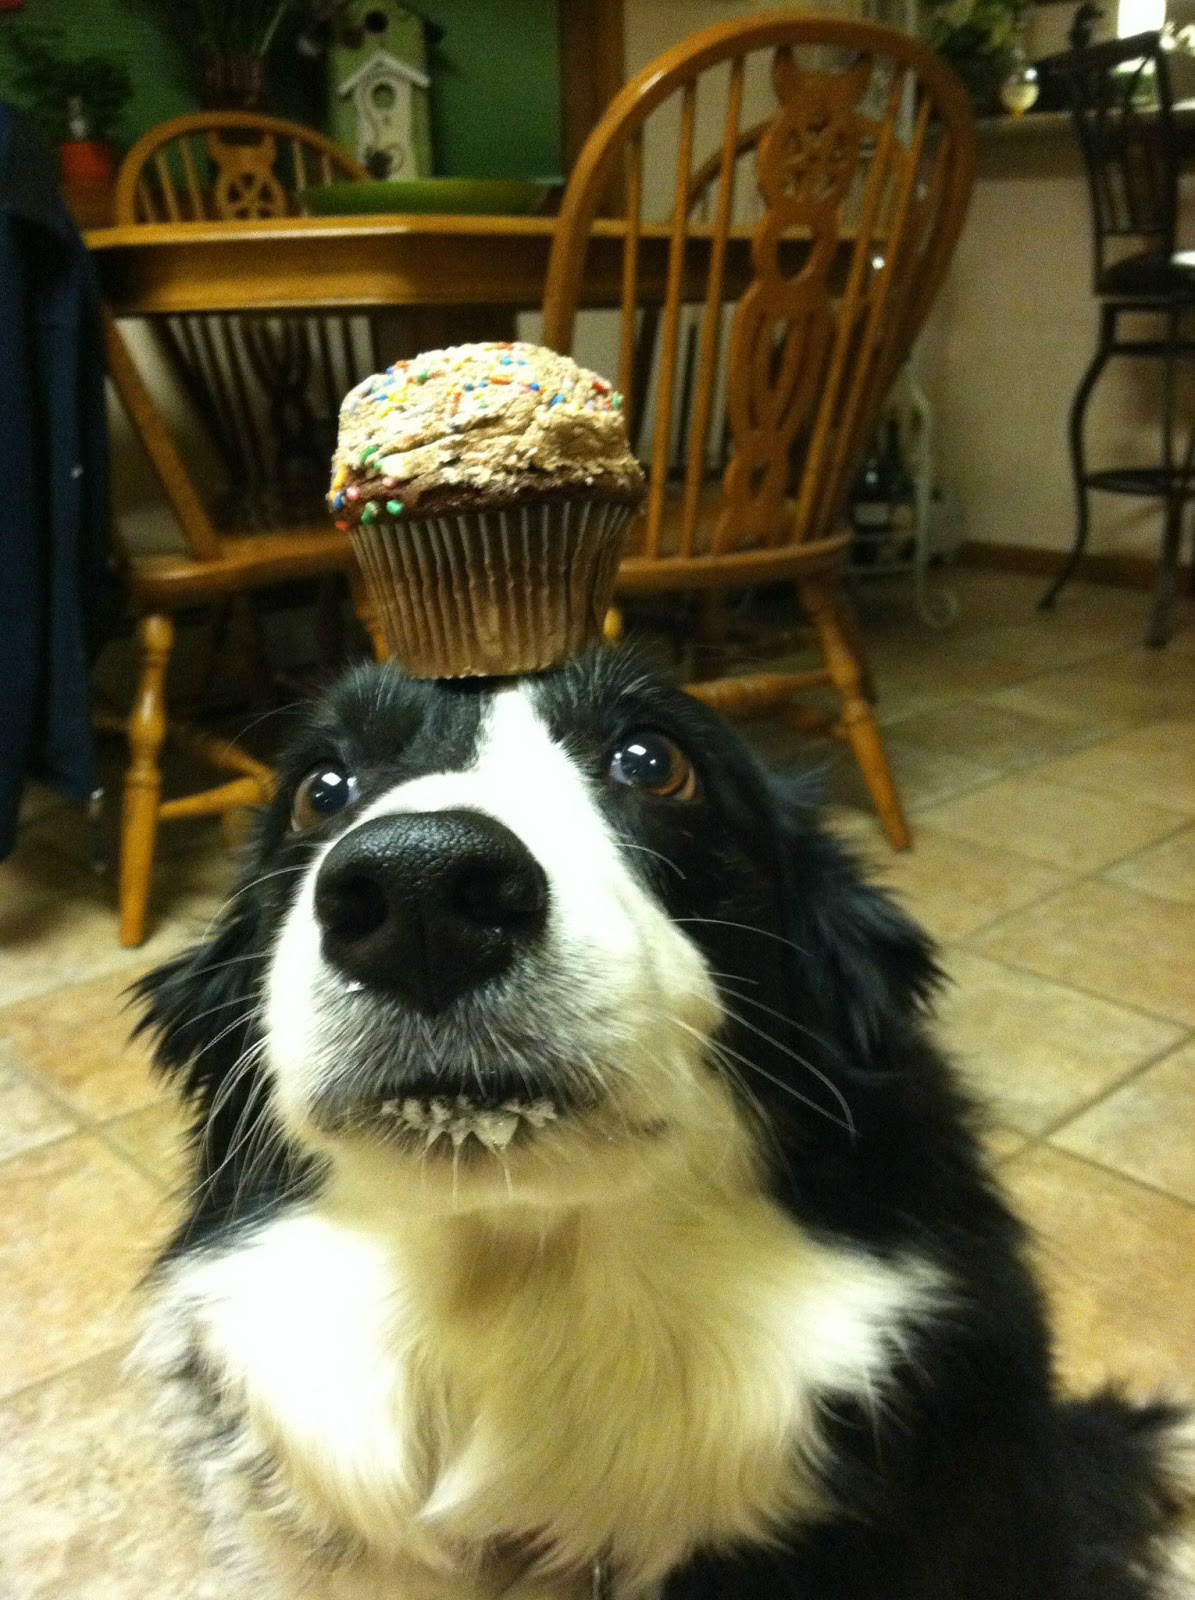 Zelda The Border Collie Balancing Things On Her Head 13